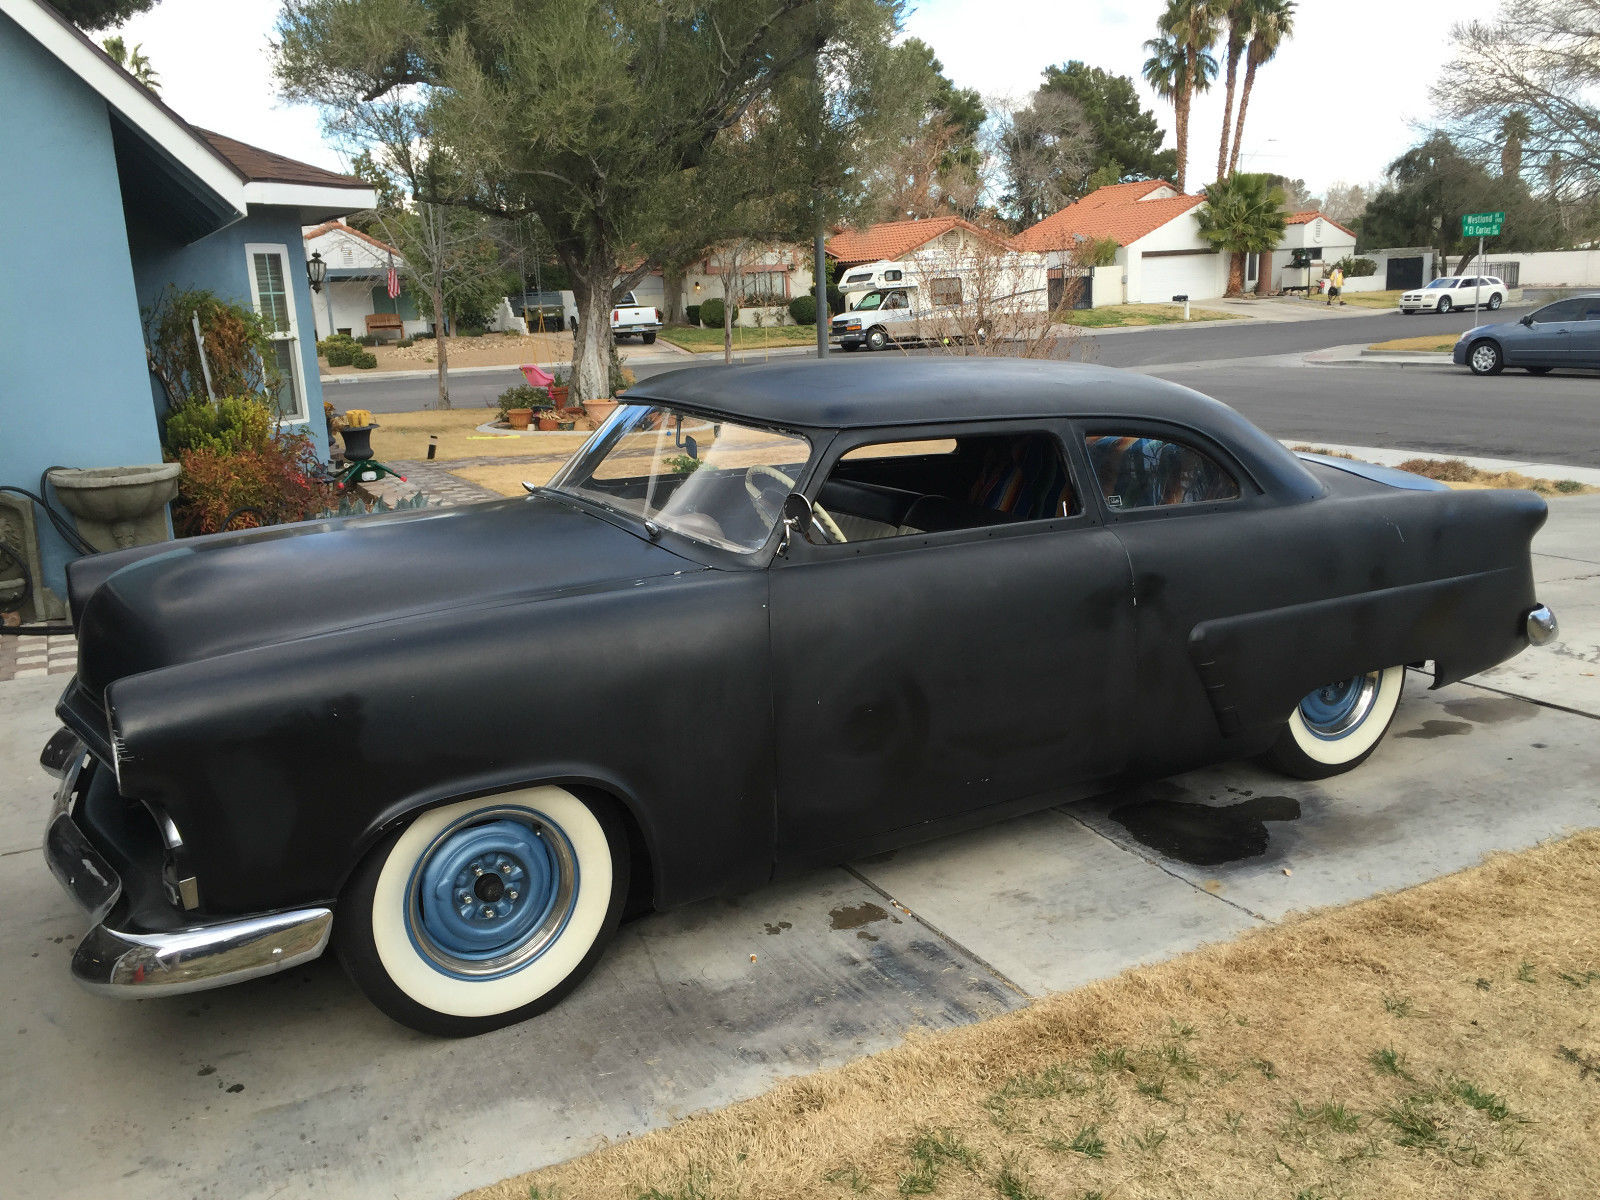 Ford Mainline Chopped Lead Sled Flathead V Hot Rod Rat Rod Kustom Kemp